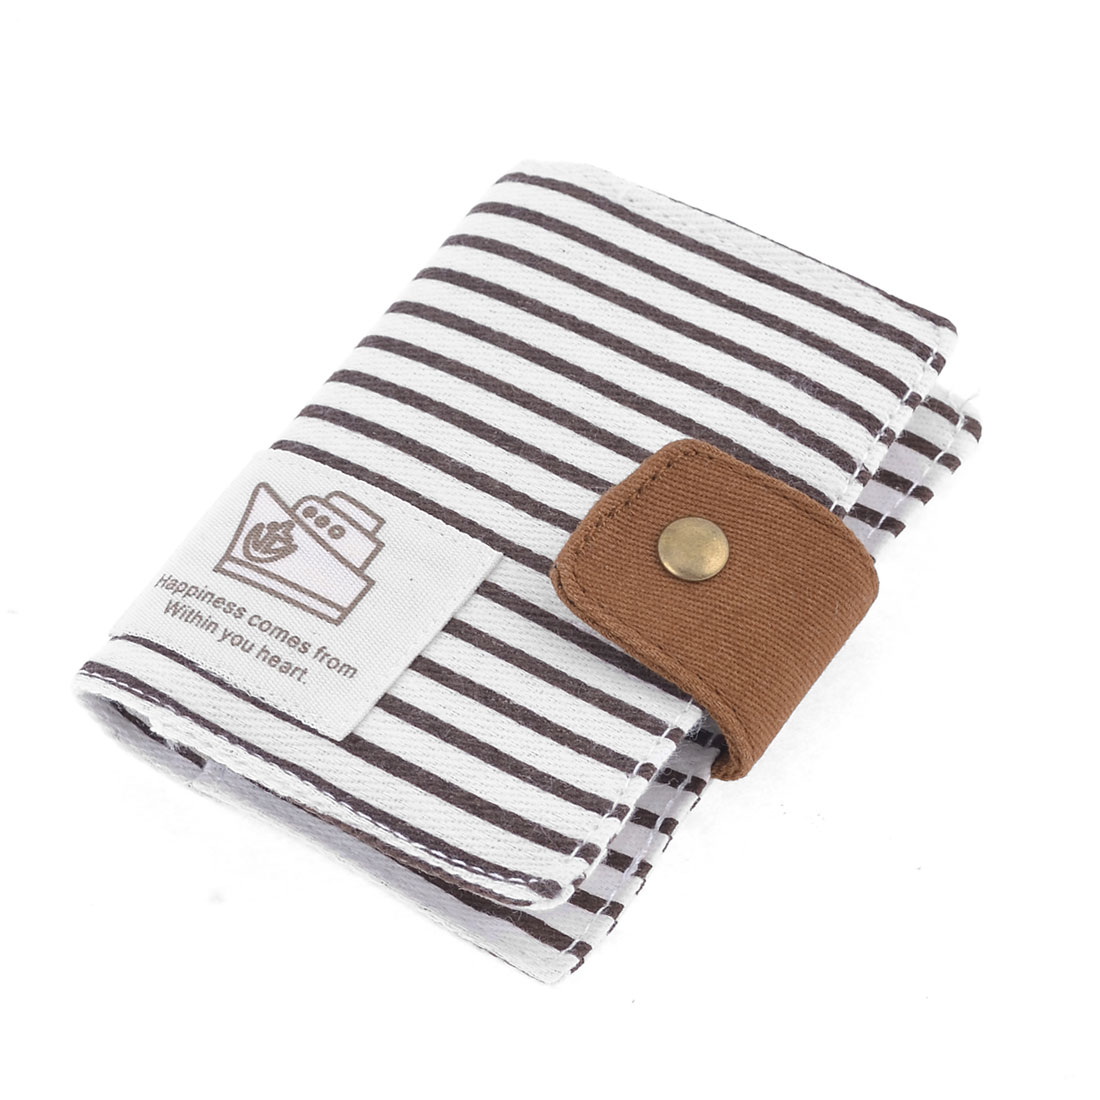 White Black Stripe Pattern Canvas Cover 20 Sheets VIP Name Card Holder Organizer